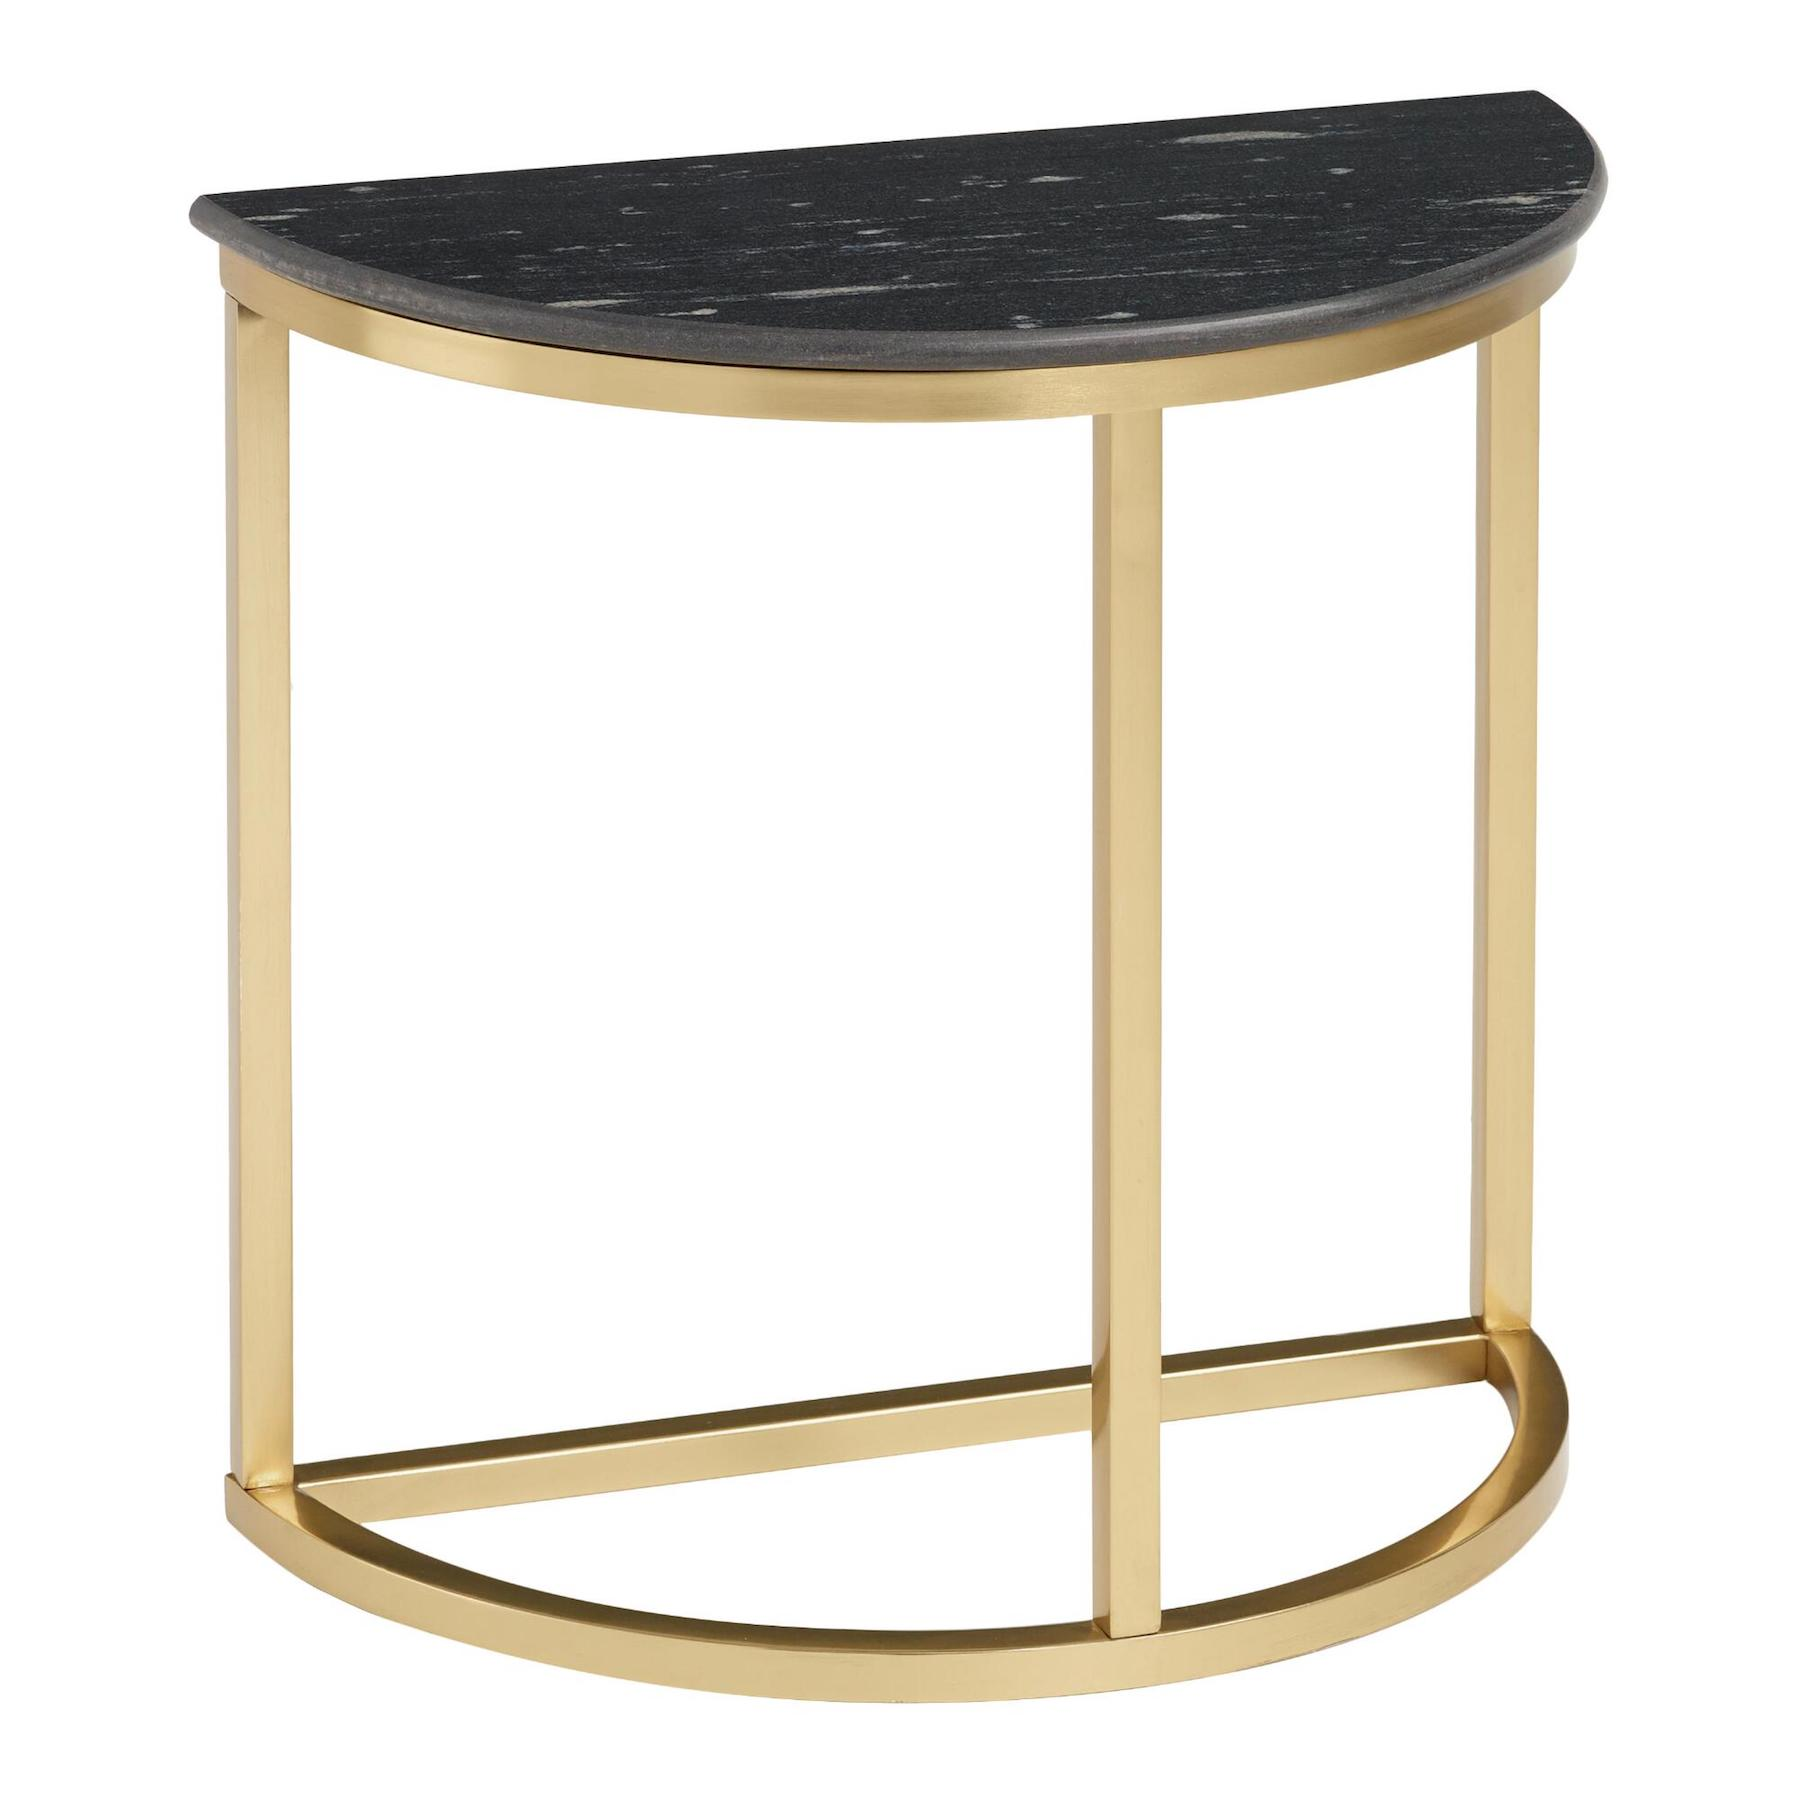 Black Marble decor trend for 2020, console table